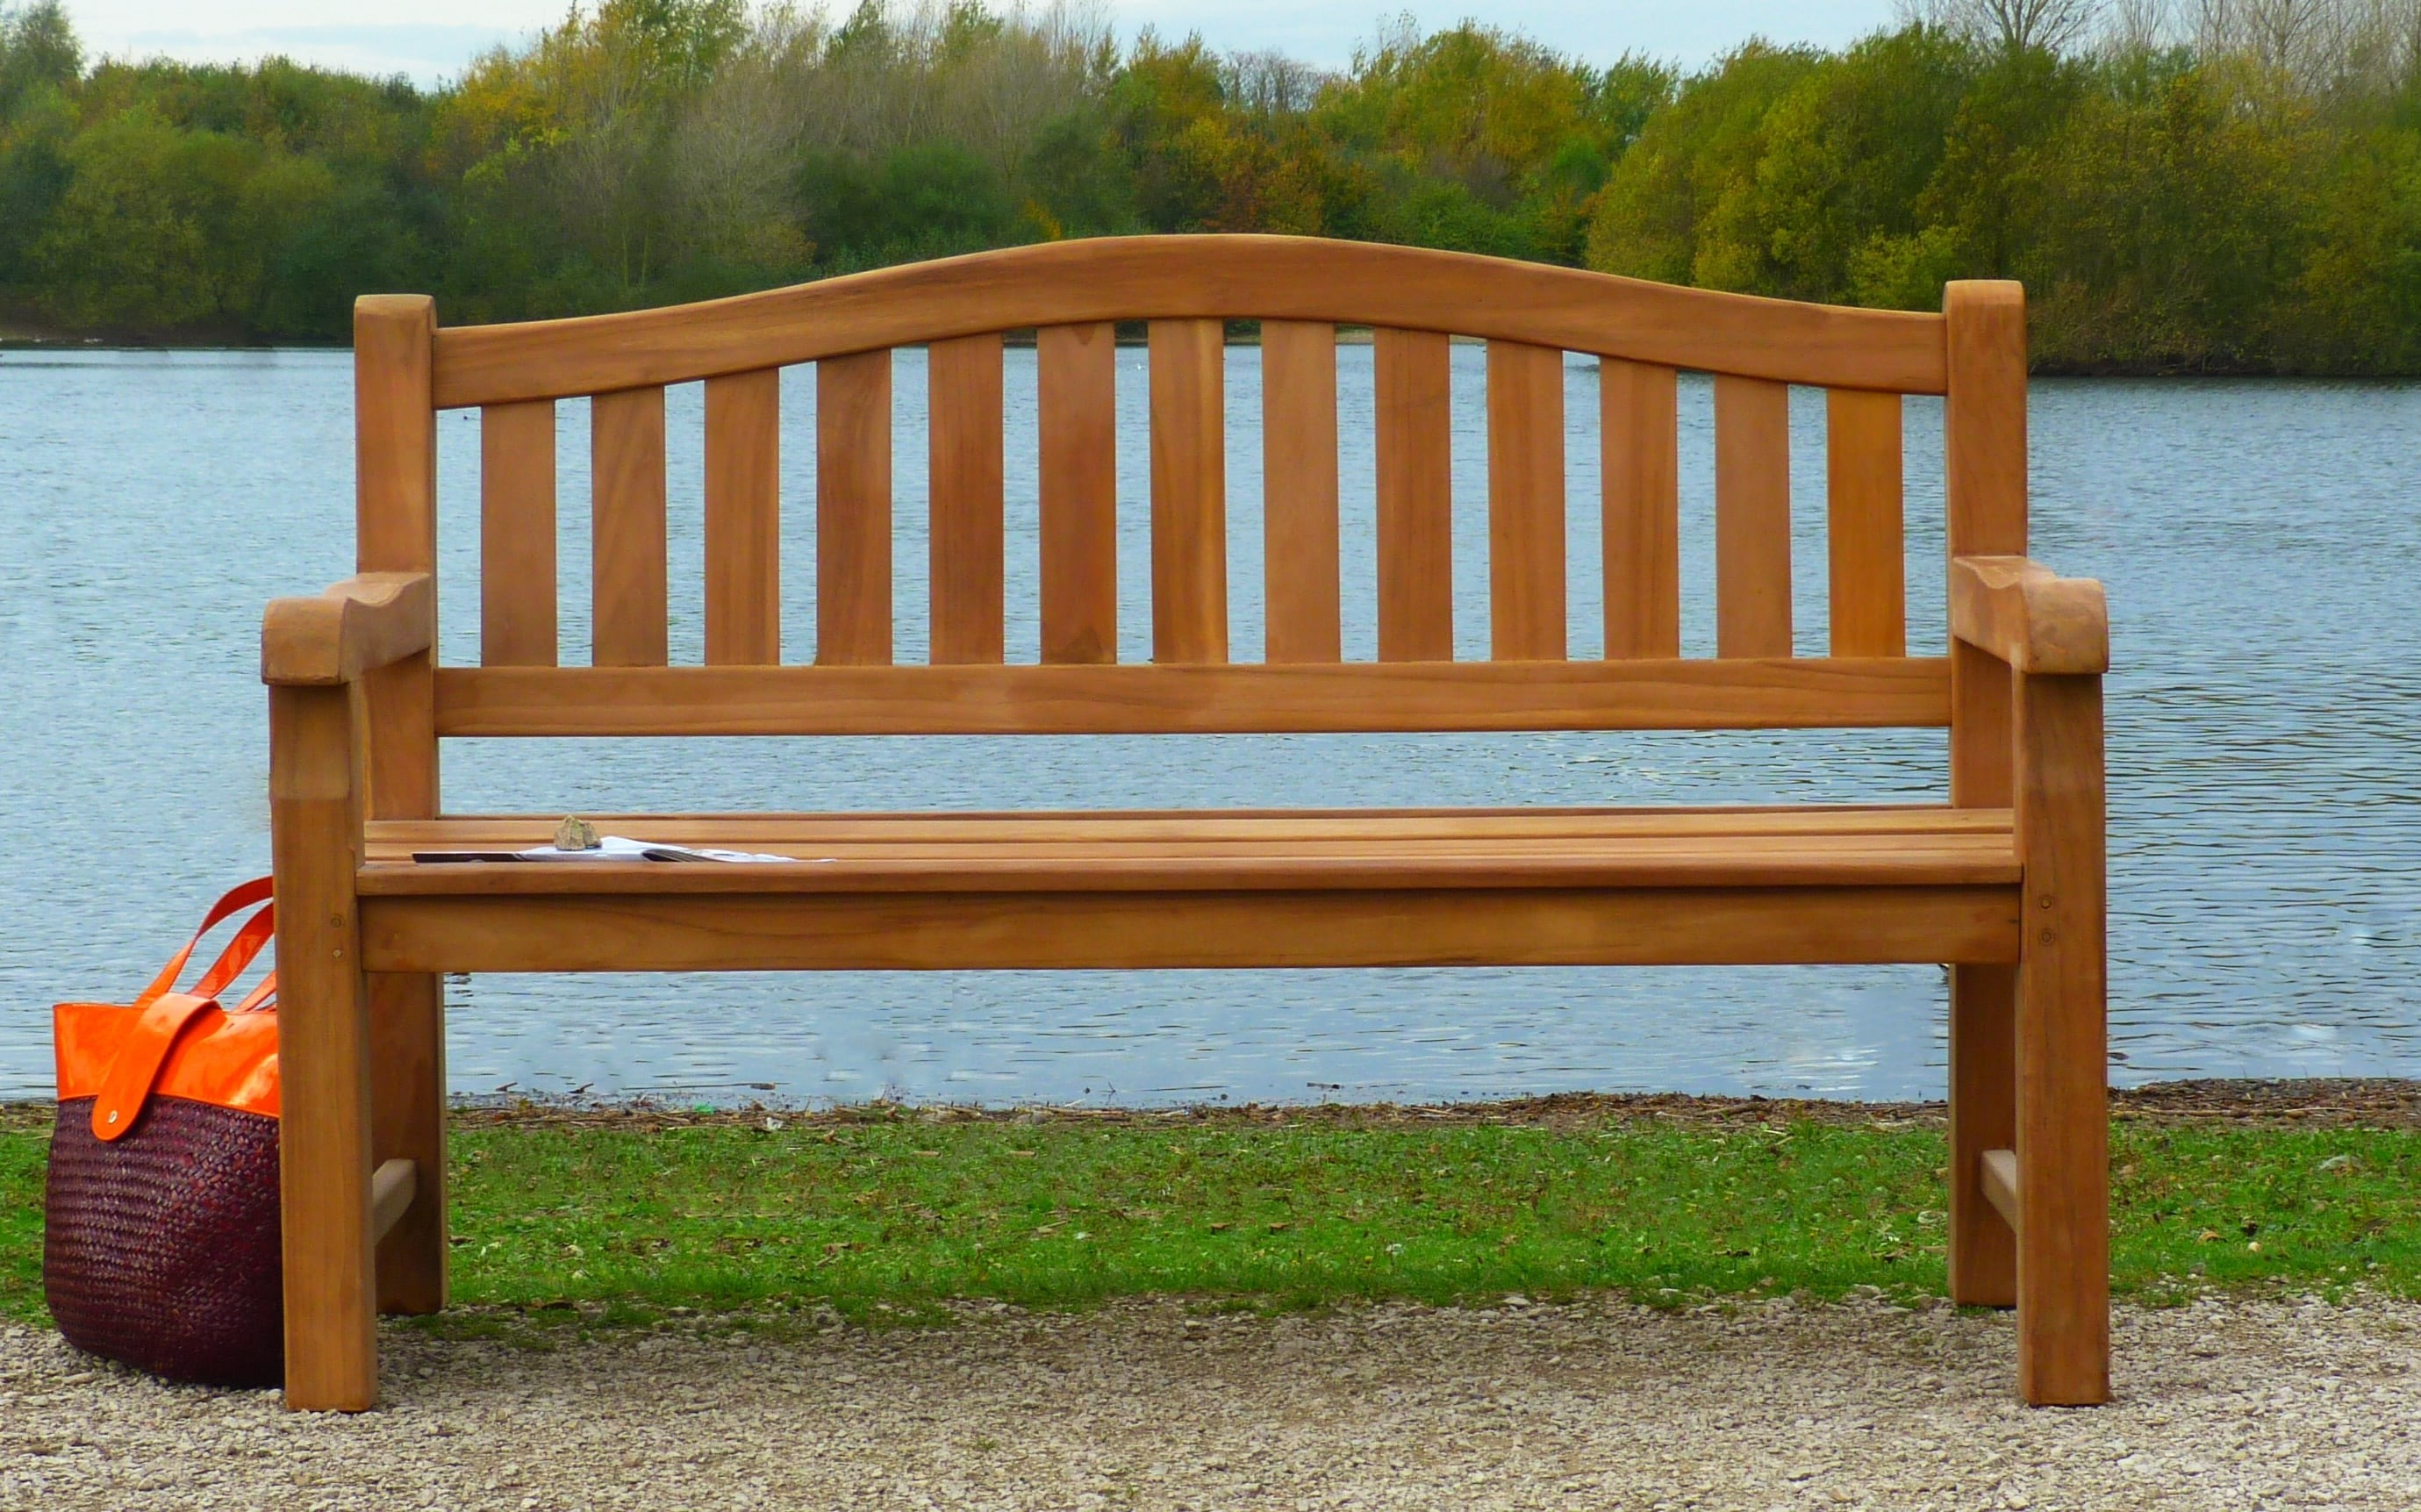 Cambridge Teak Memorial Bench 3 Seater 1.5m | Sloane & Sons